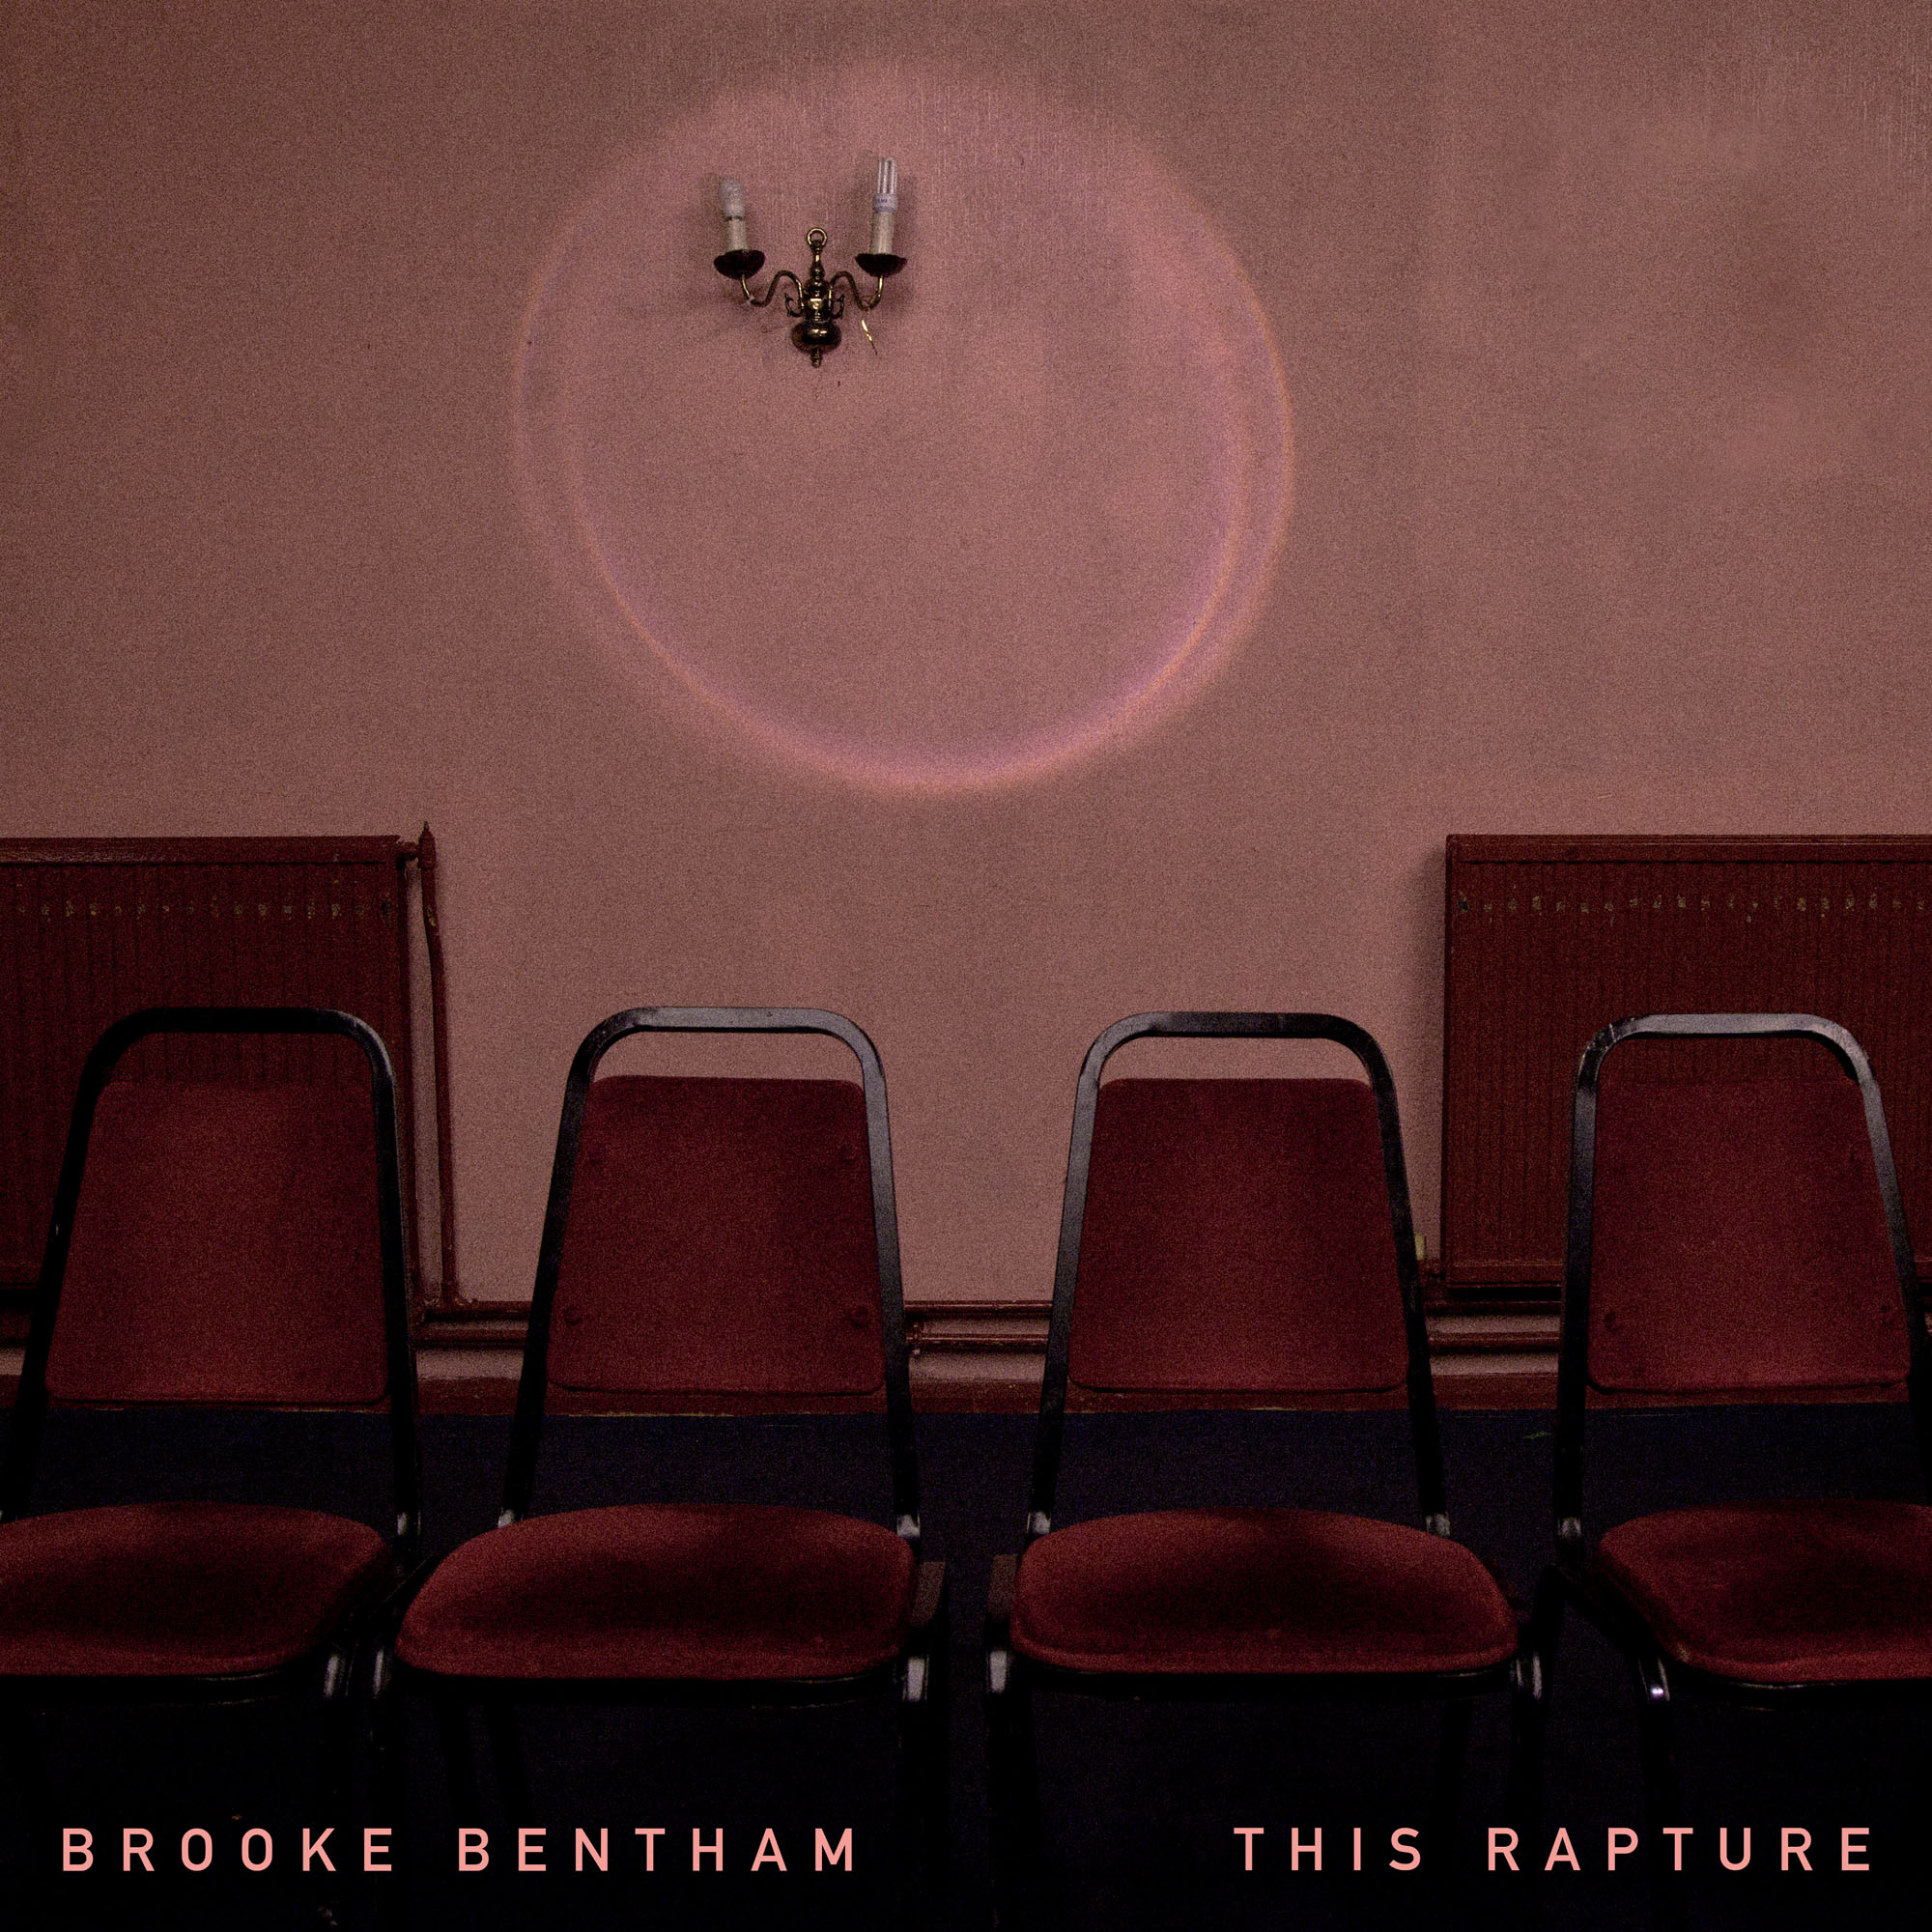 This Rapture (Download) - BROOKE BENTHAM